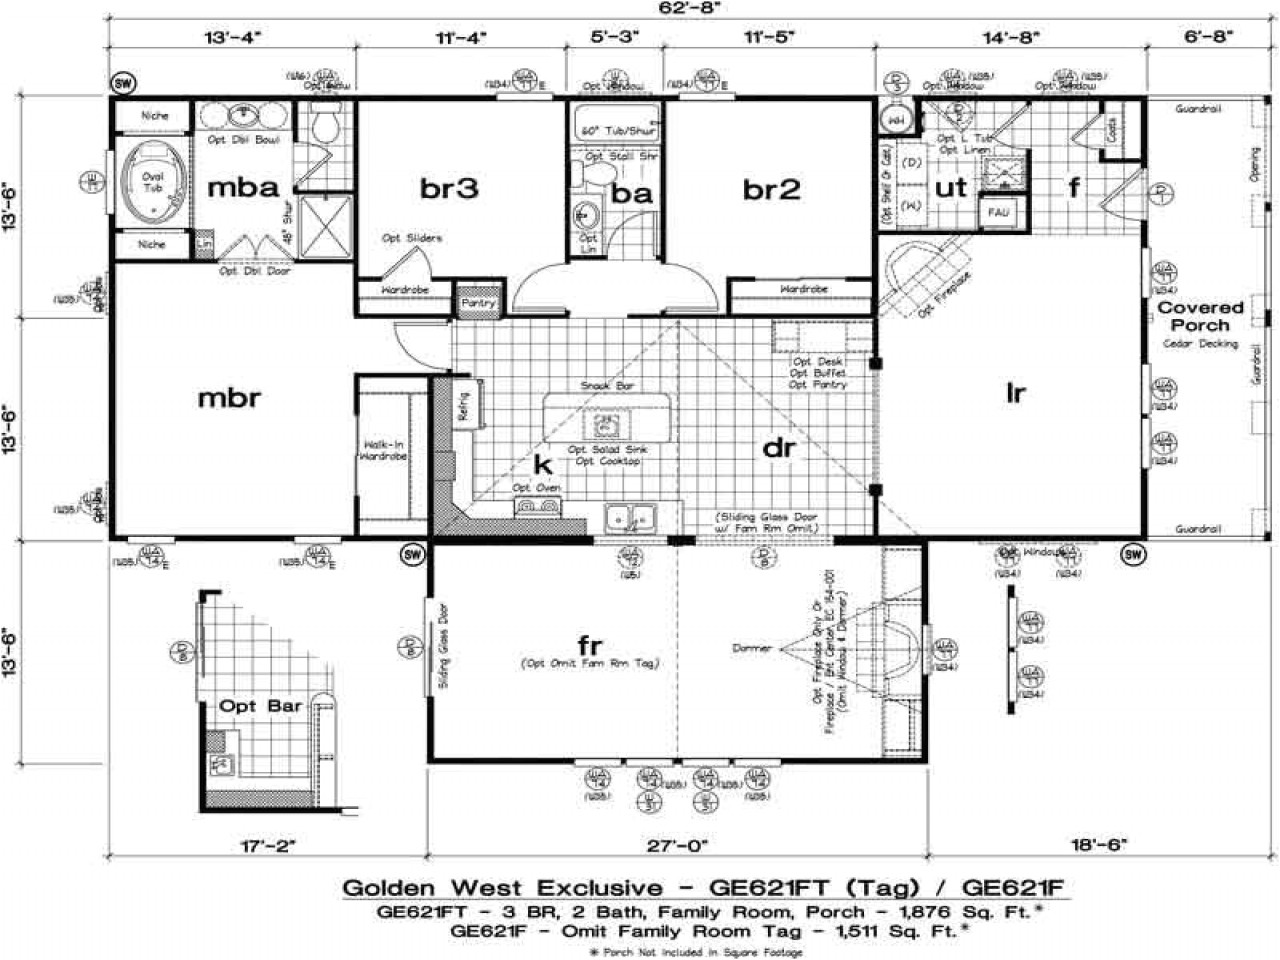 b55793e1b9a6388c used modular homes oregon oregon modular homes floor plans and prices